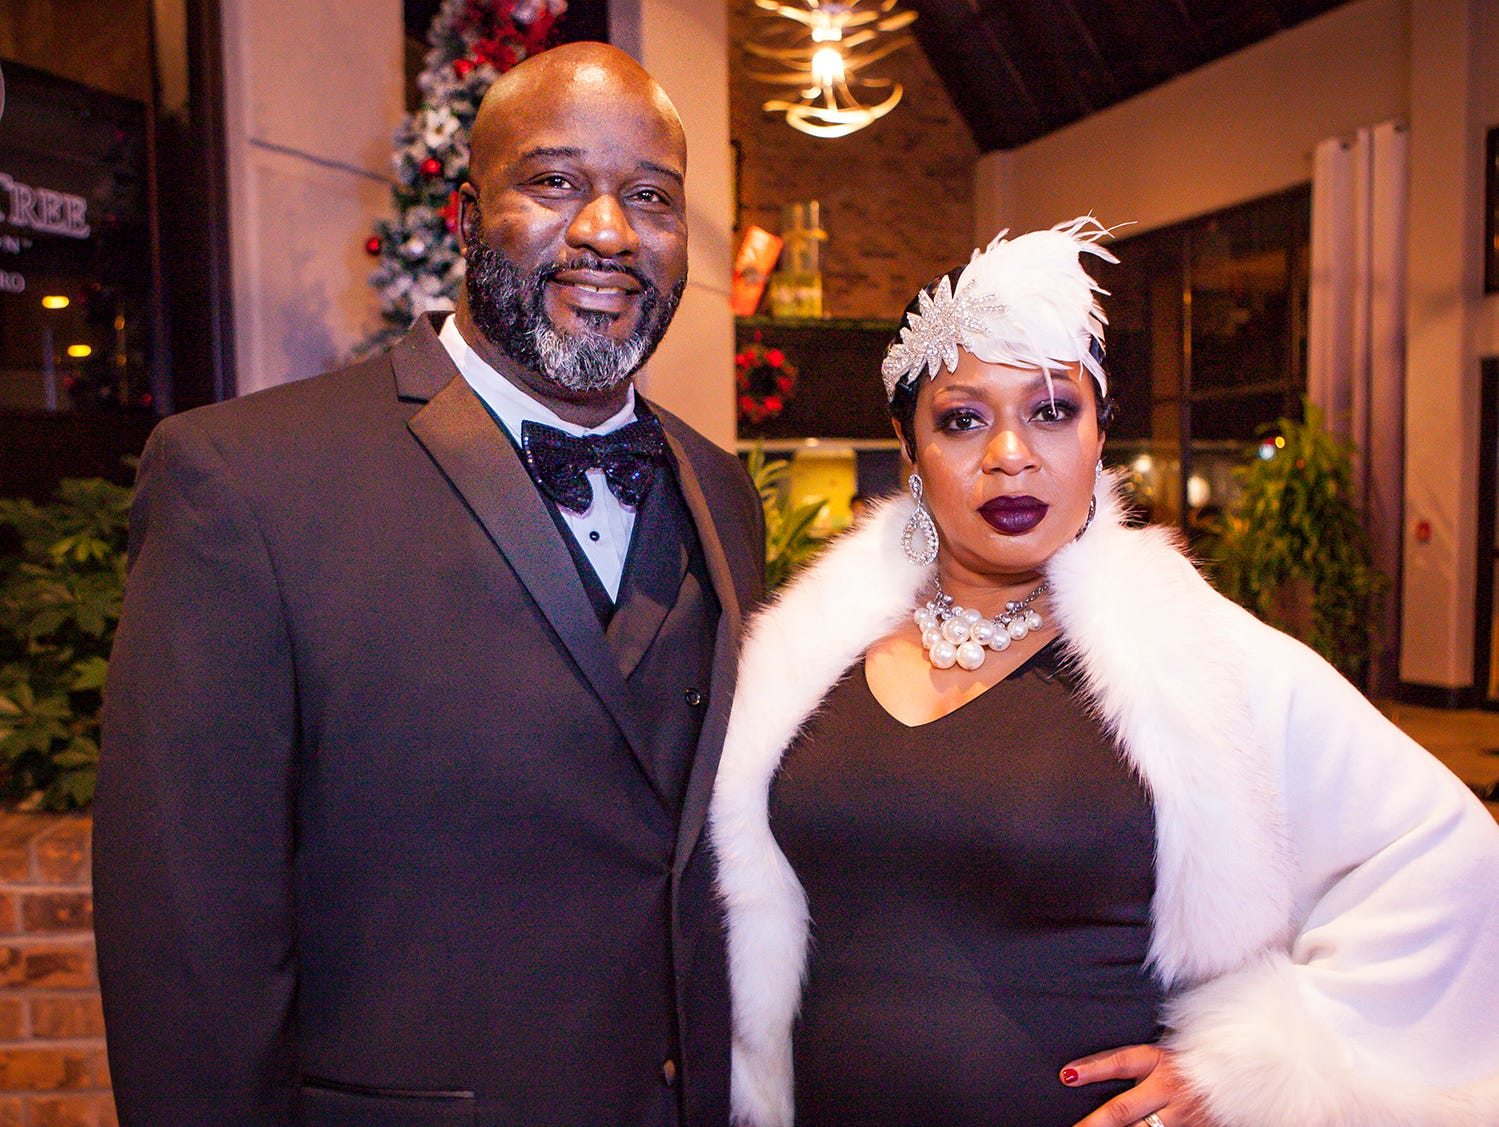 Maurice and Tyeisha Williams at the Pyramid Foundation's Shimmer and Shine New Year's Eve party, held at DoubleTree Hotel in Murfreesboro.